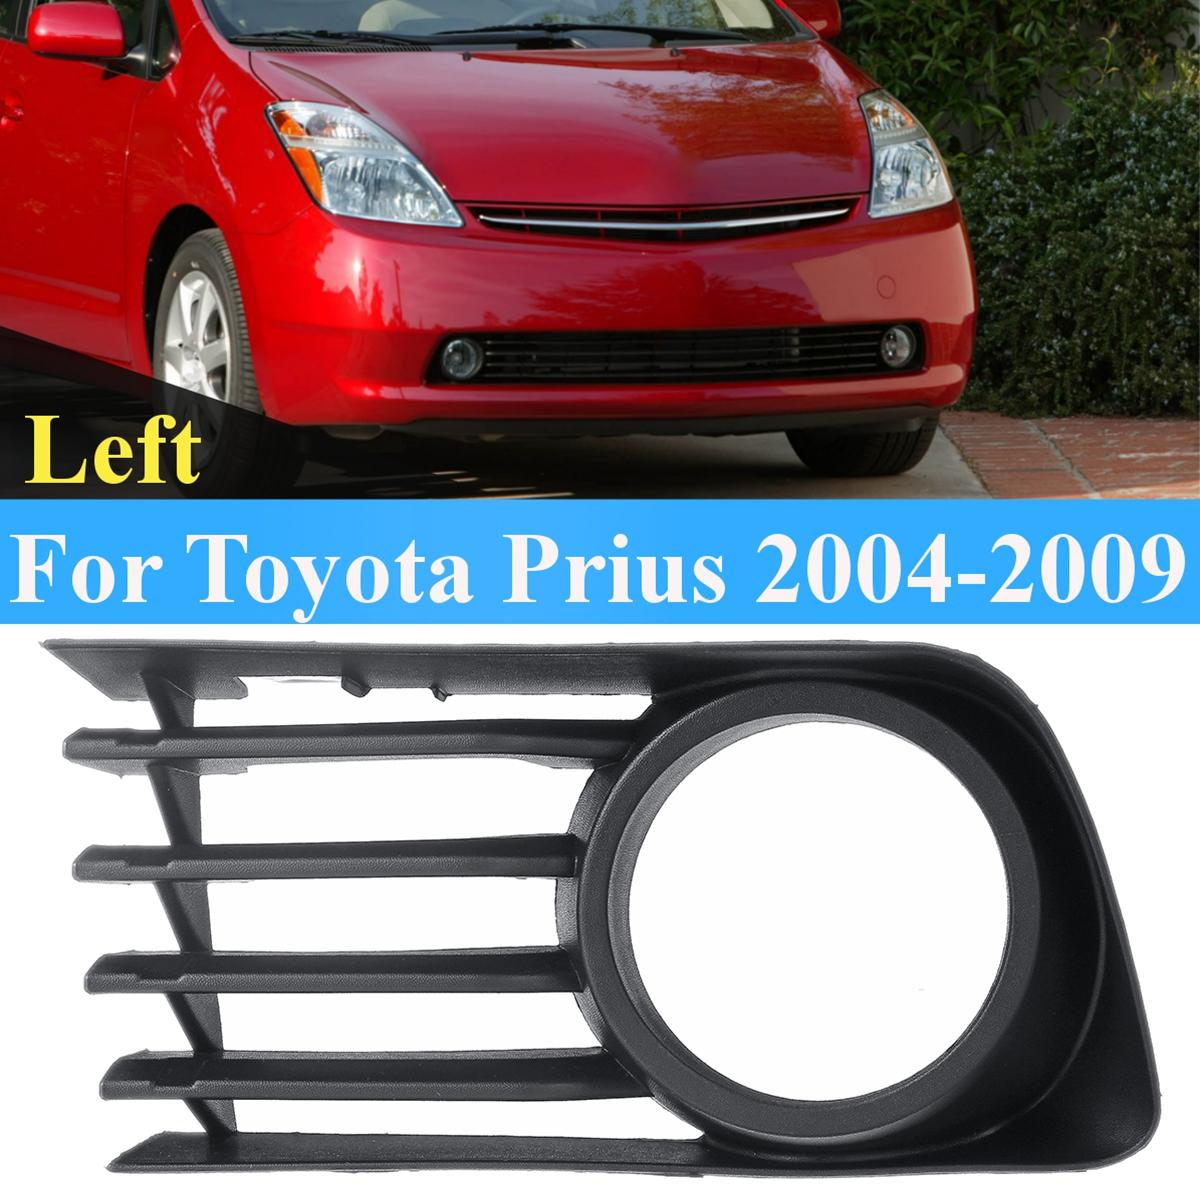 Front Right Fog Light Lamp Cover Grille For Toyota Prius 2004-2009 #53112-47030